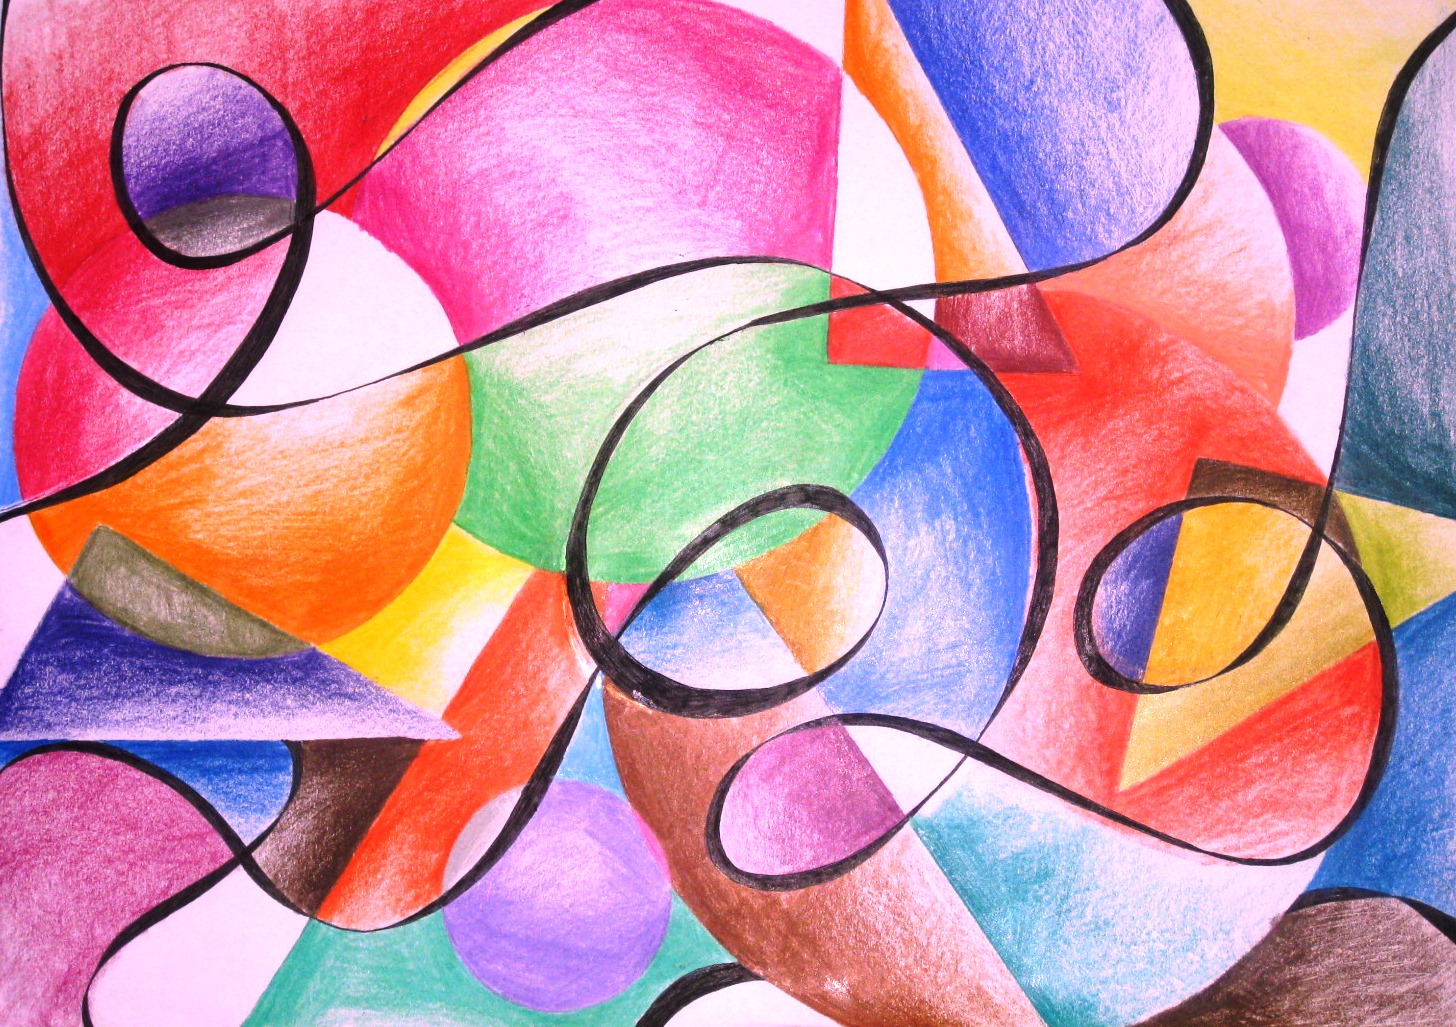 Gallery For gt Color Pencil Art Abstract